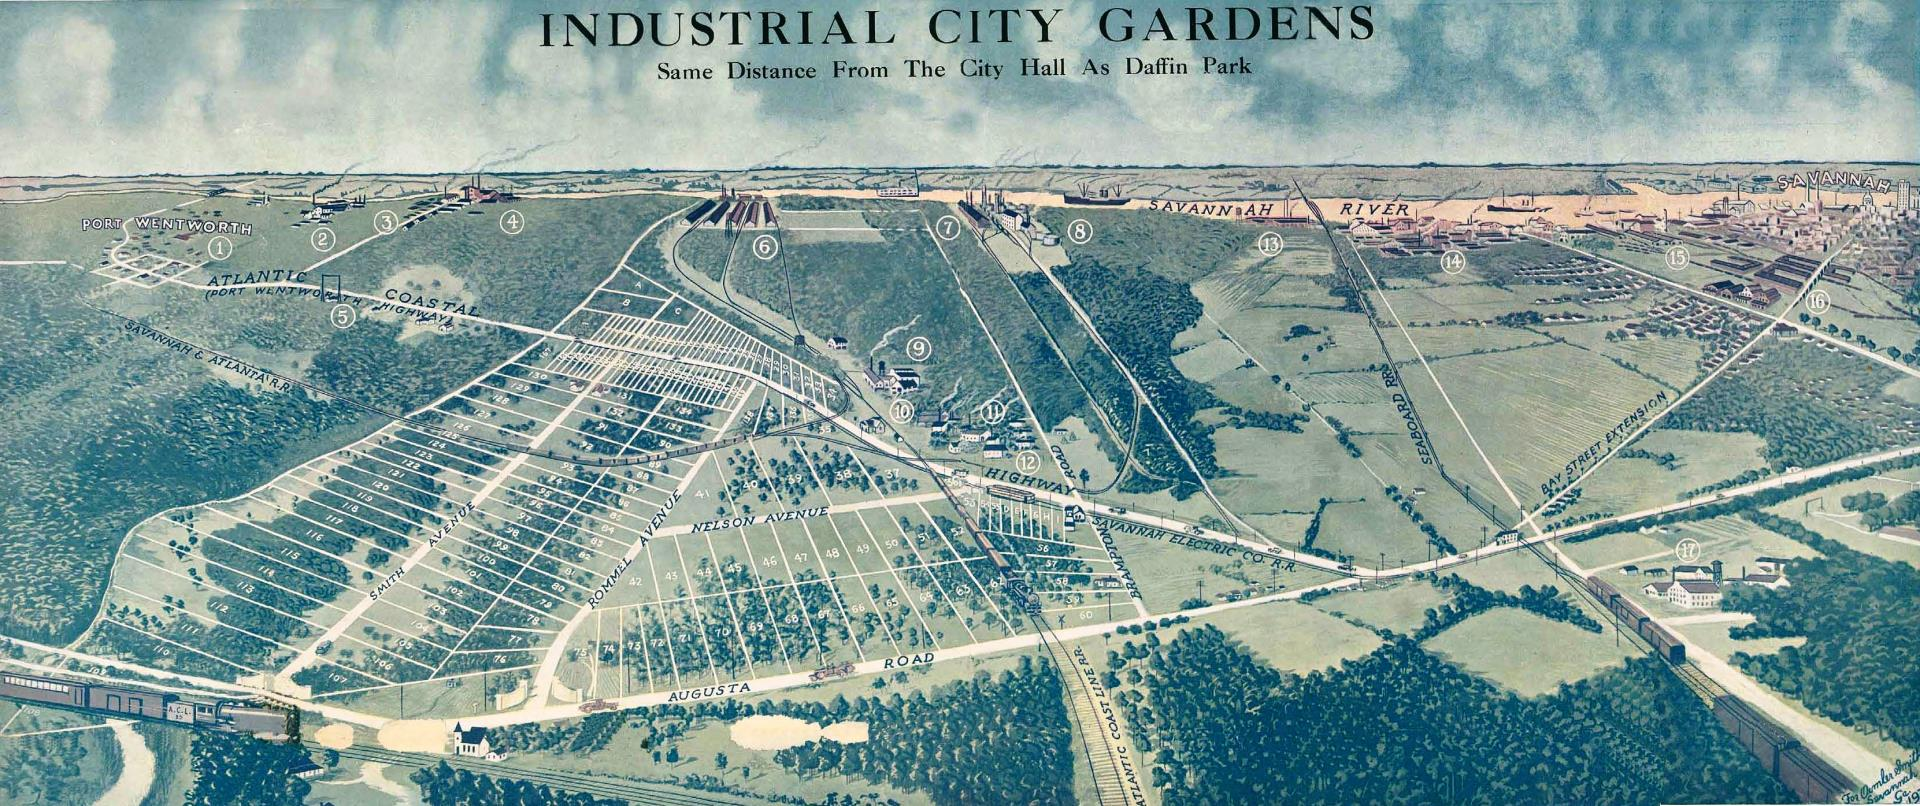 Industrial City Gardens brochure map